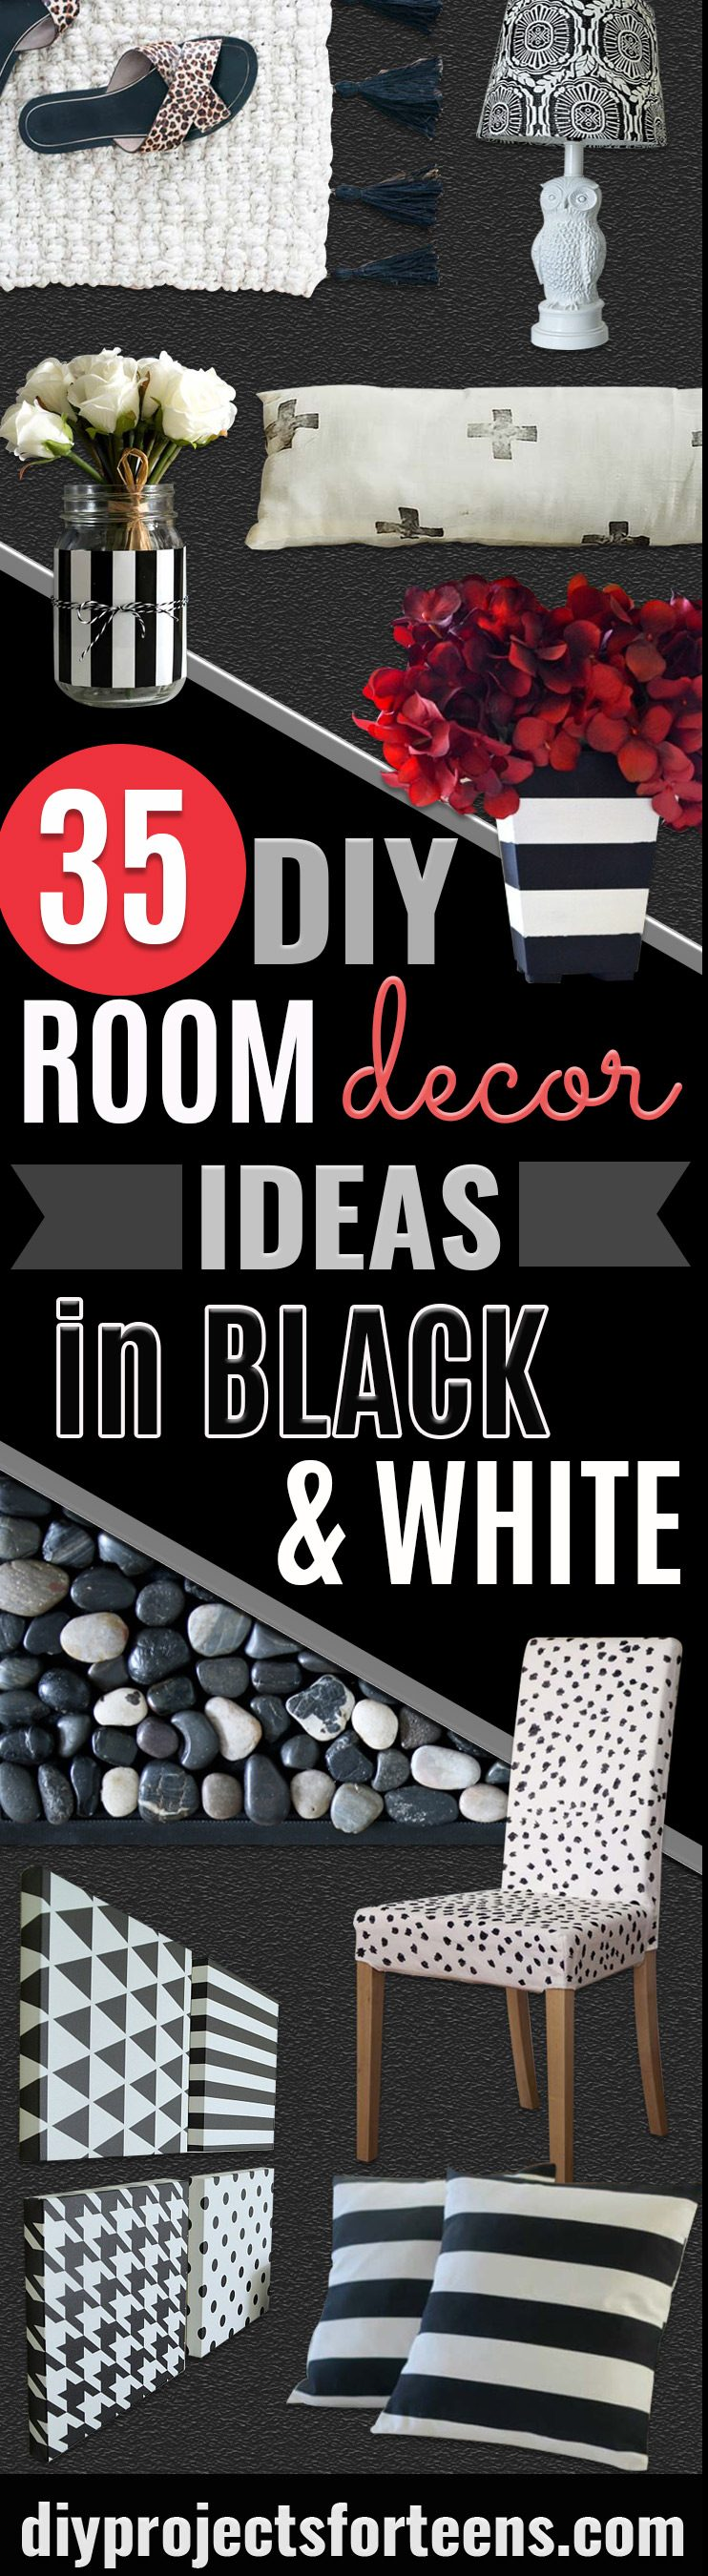 DIY Room Decor Ideas in Black and White - Creative Home Decor and Room Accessories - Cheap and Easy Projects and Crafts for Wall Art, Bedding, Pillows, Rugs and Lighting - Fun Ideas and Projects for Teens, Apartments, Adutls and Teenagers http://stage.diyprojectsforteens.com/diy-decor-black-white